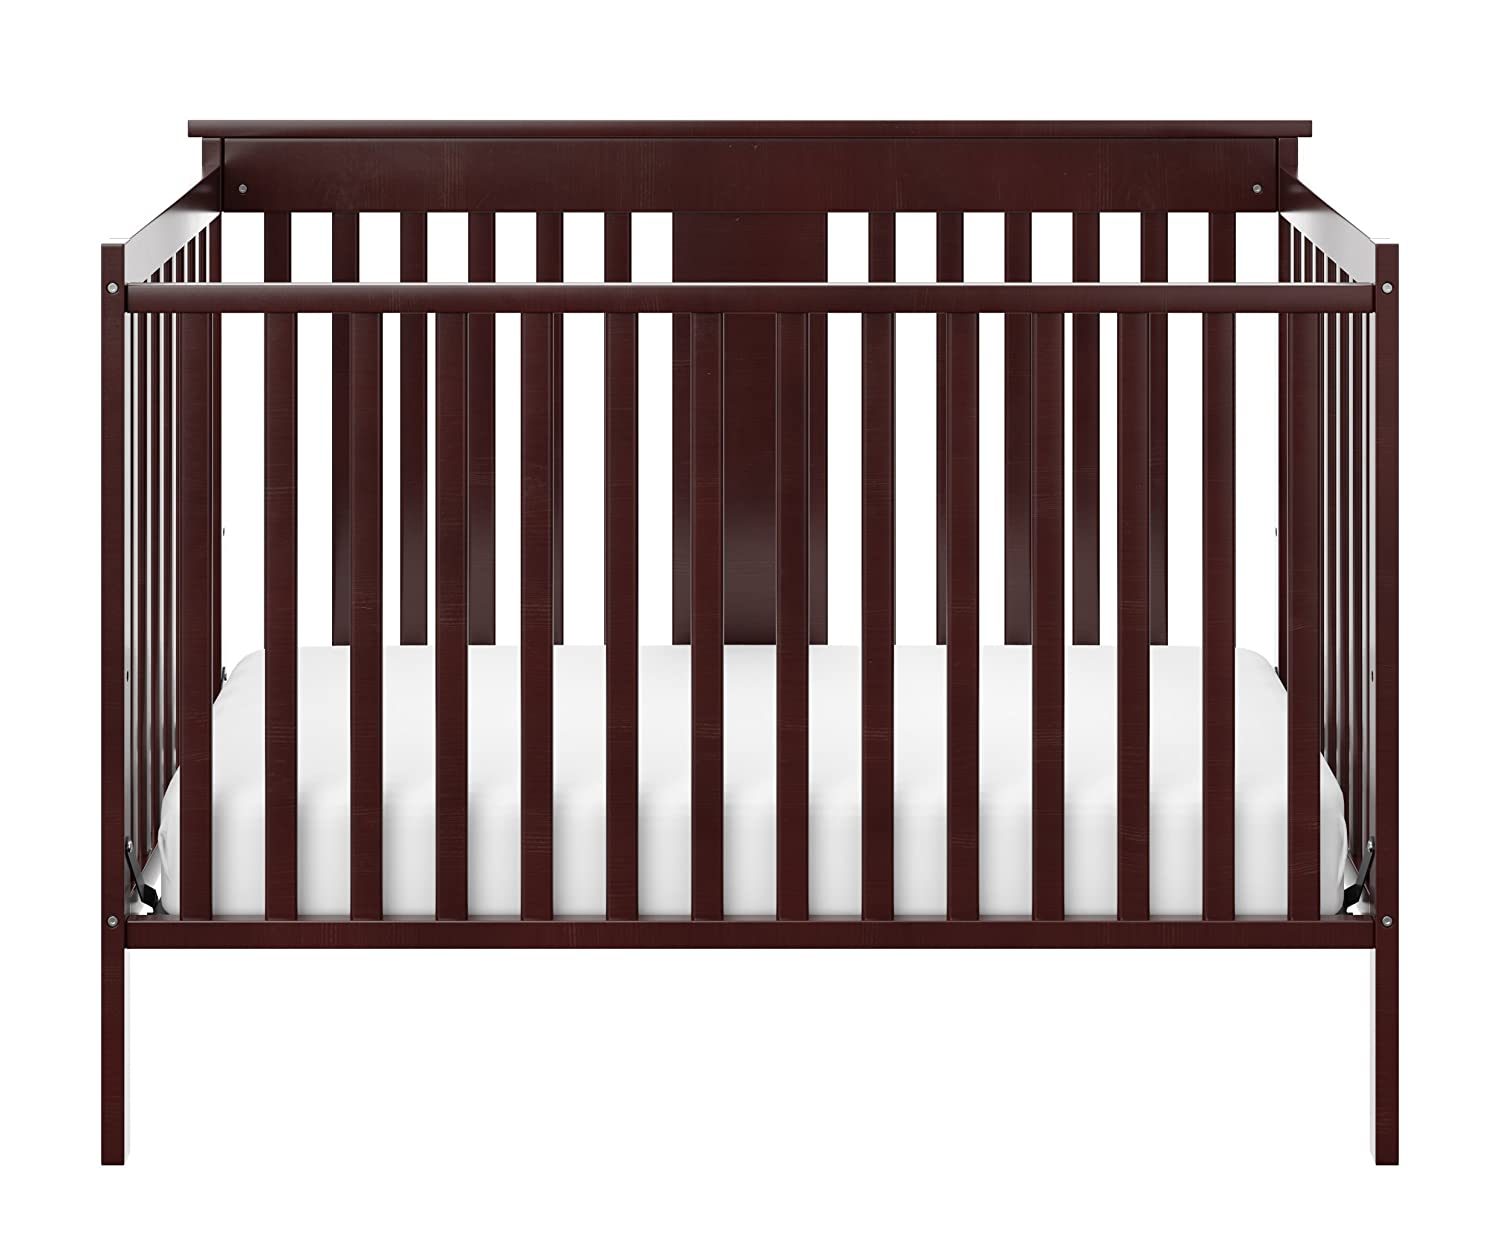 Storkcraft Mission Ridge Fixed Side Convertible Crib, Espresso, Fixed Side Crib, Solid Pine and Wood Product Construction, Converts to Toddler Bed Day Bed or Full Bed, Mattress Not Included